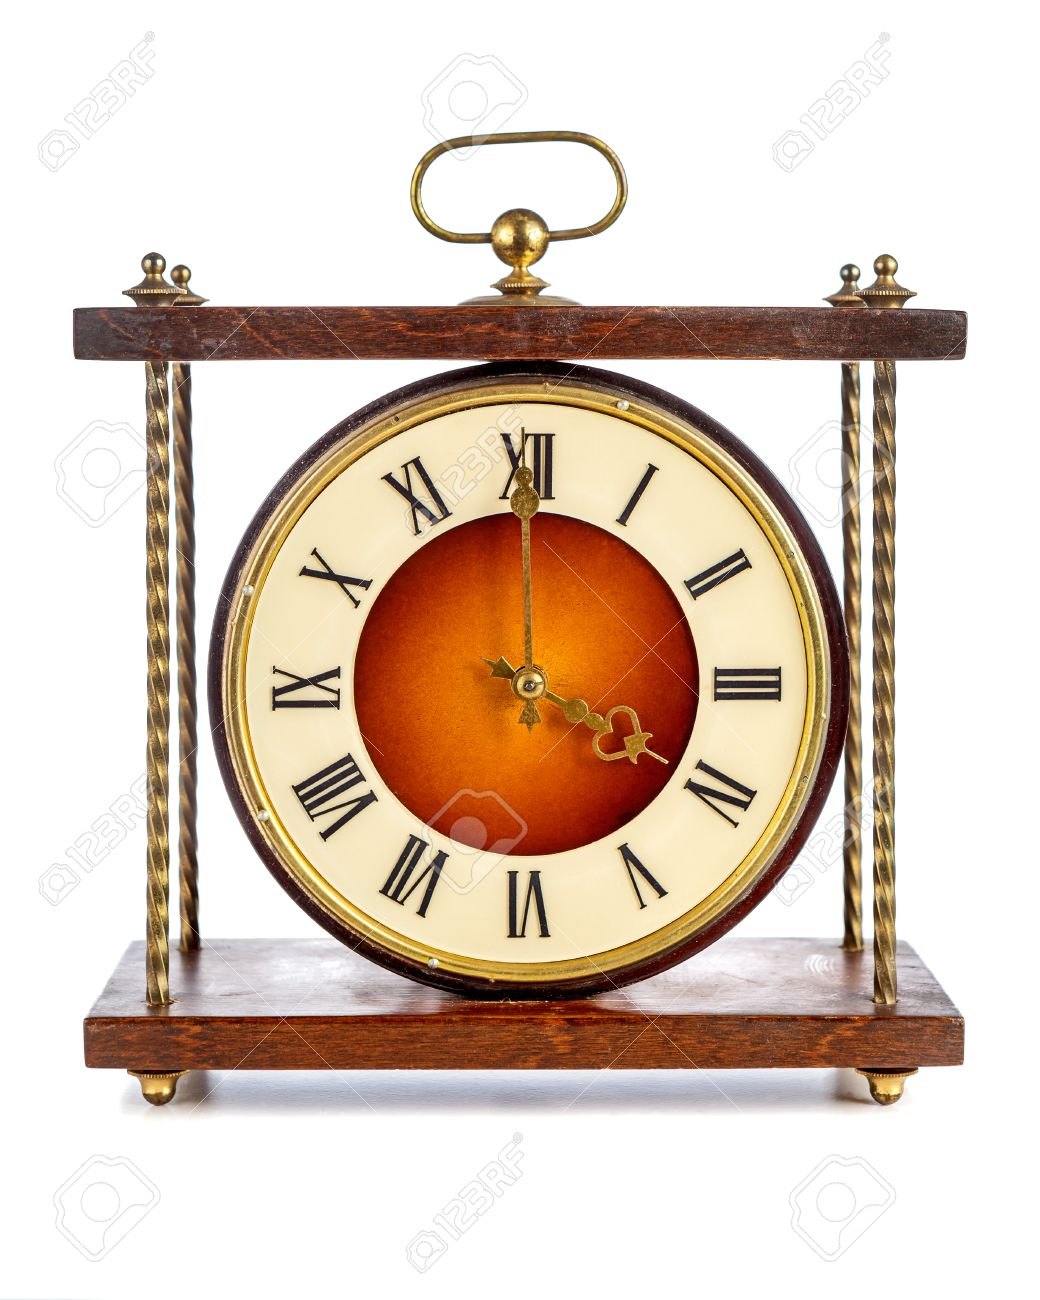 Worksheet Roman Numerals Four old clock with roman numerals showing four oclock over white background stock photo